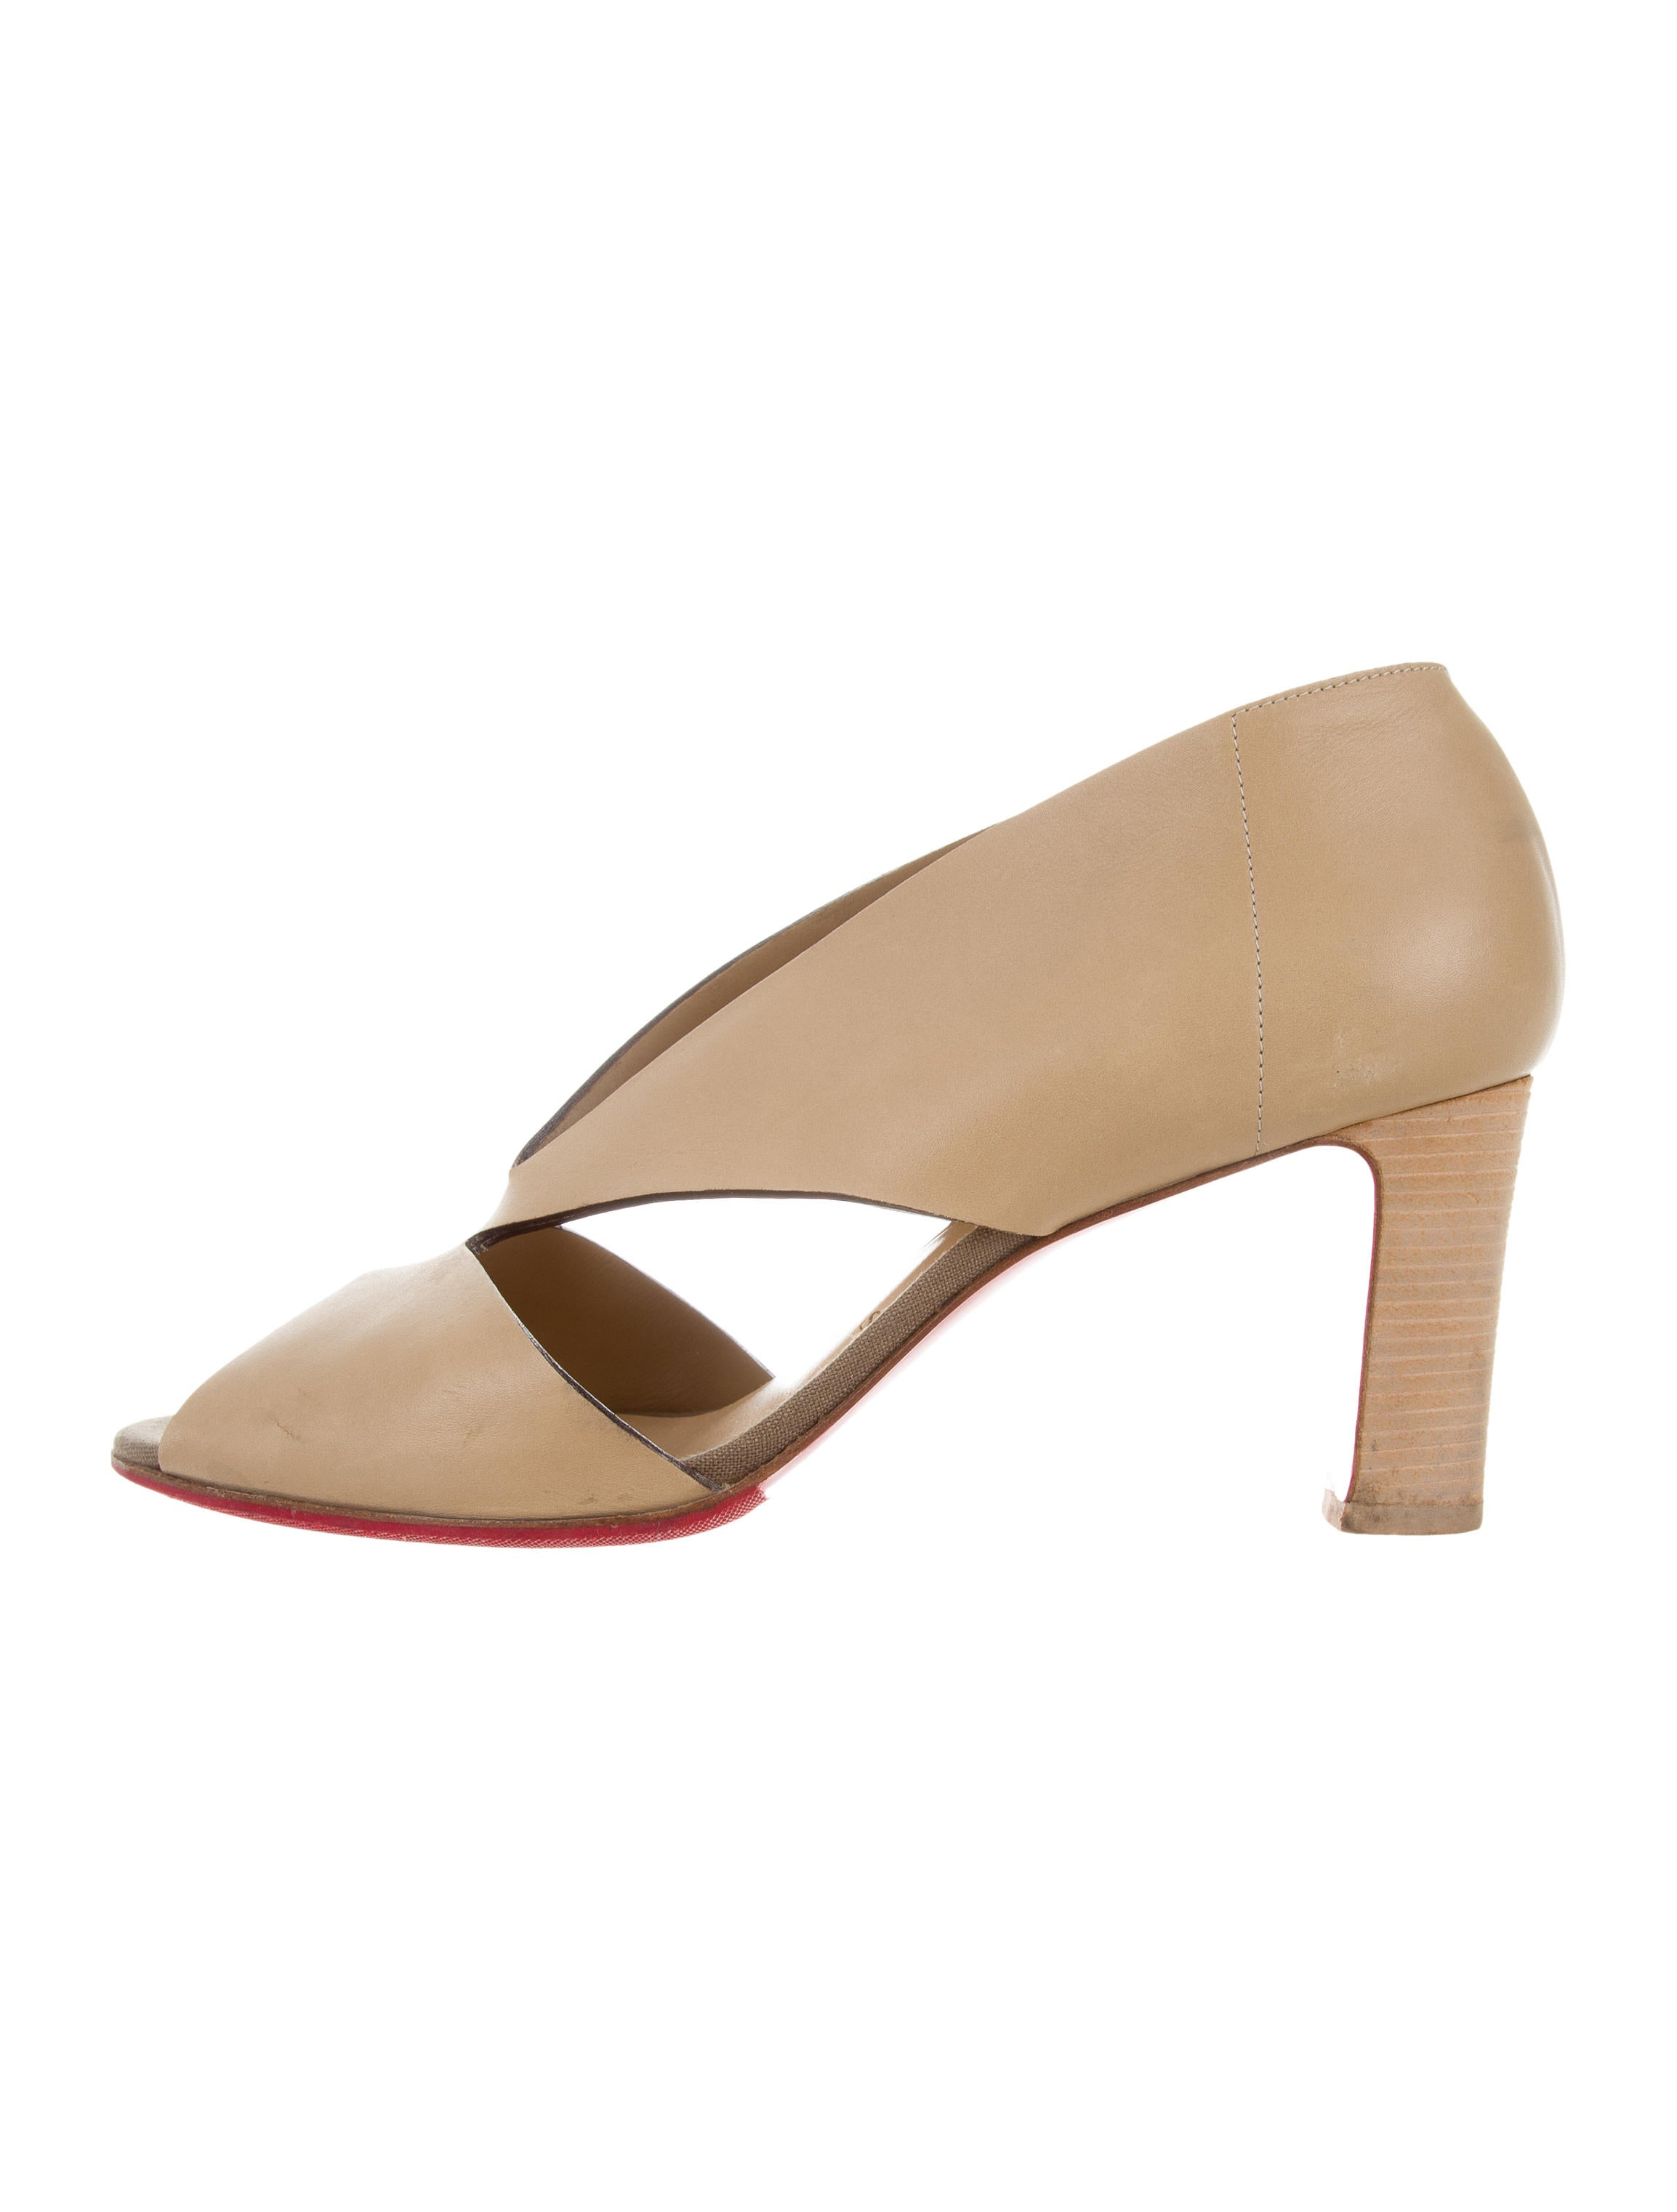 090c79219df1 Real Christian Louboutin On Sale Christian Pulisic Soccer